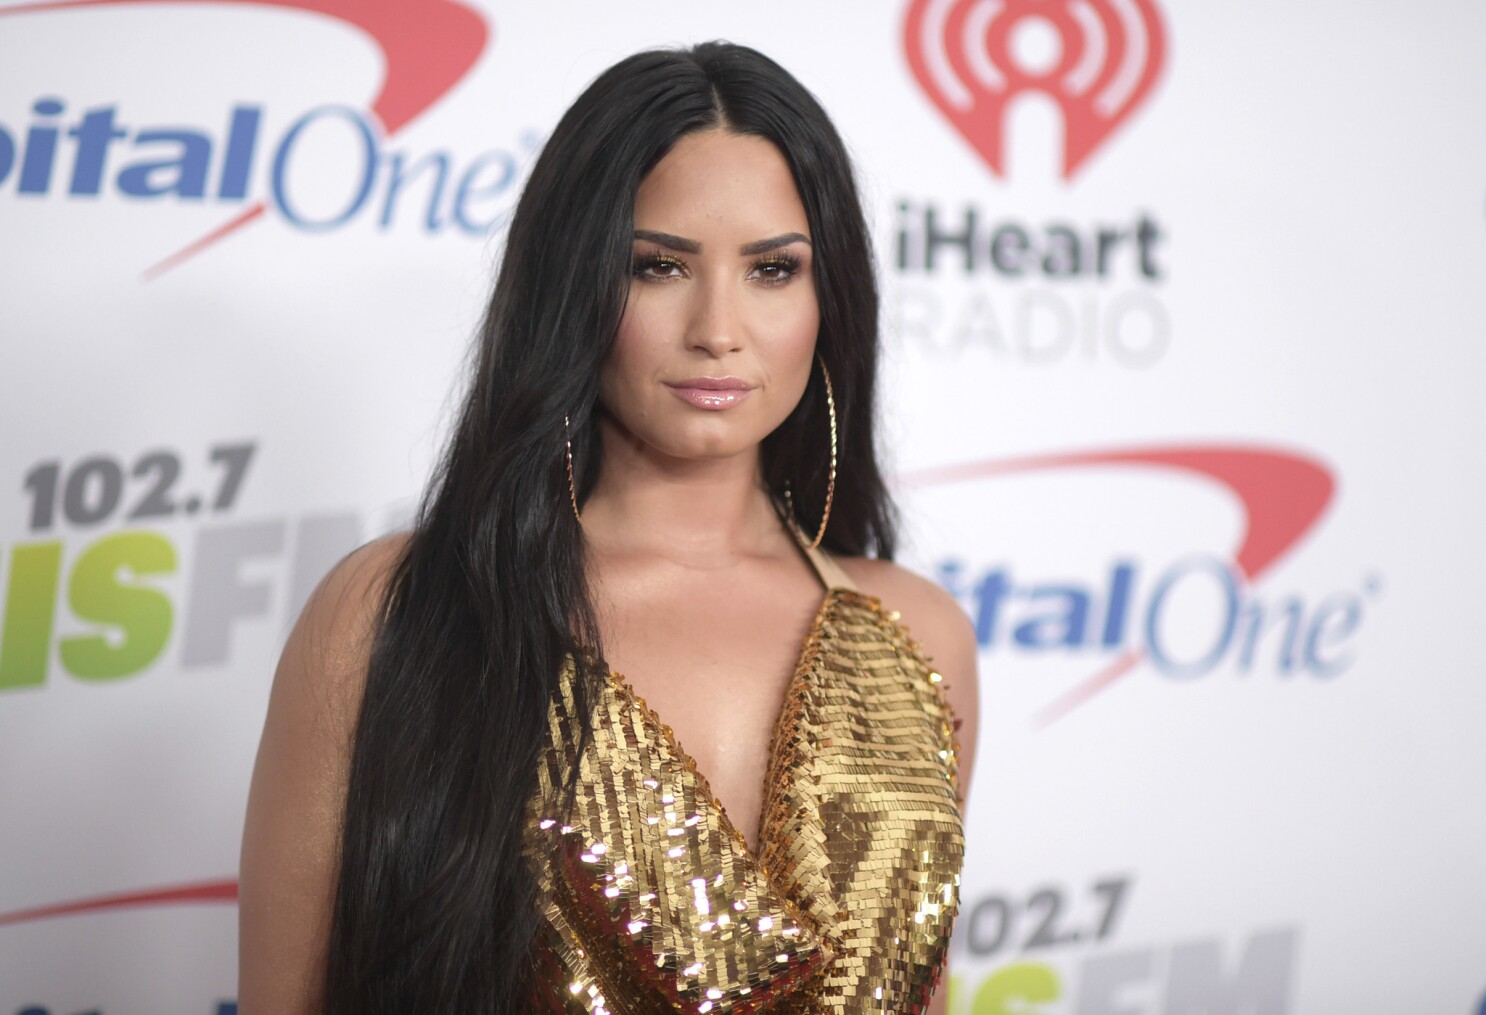 Andrea C Nude Pics demi lovato's nude photos leak after her snapchat is hacked